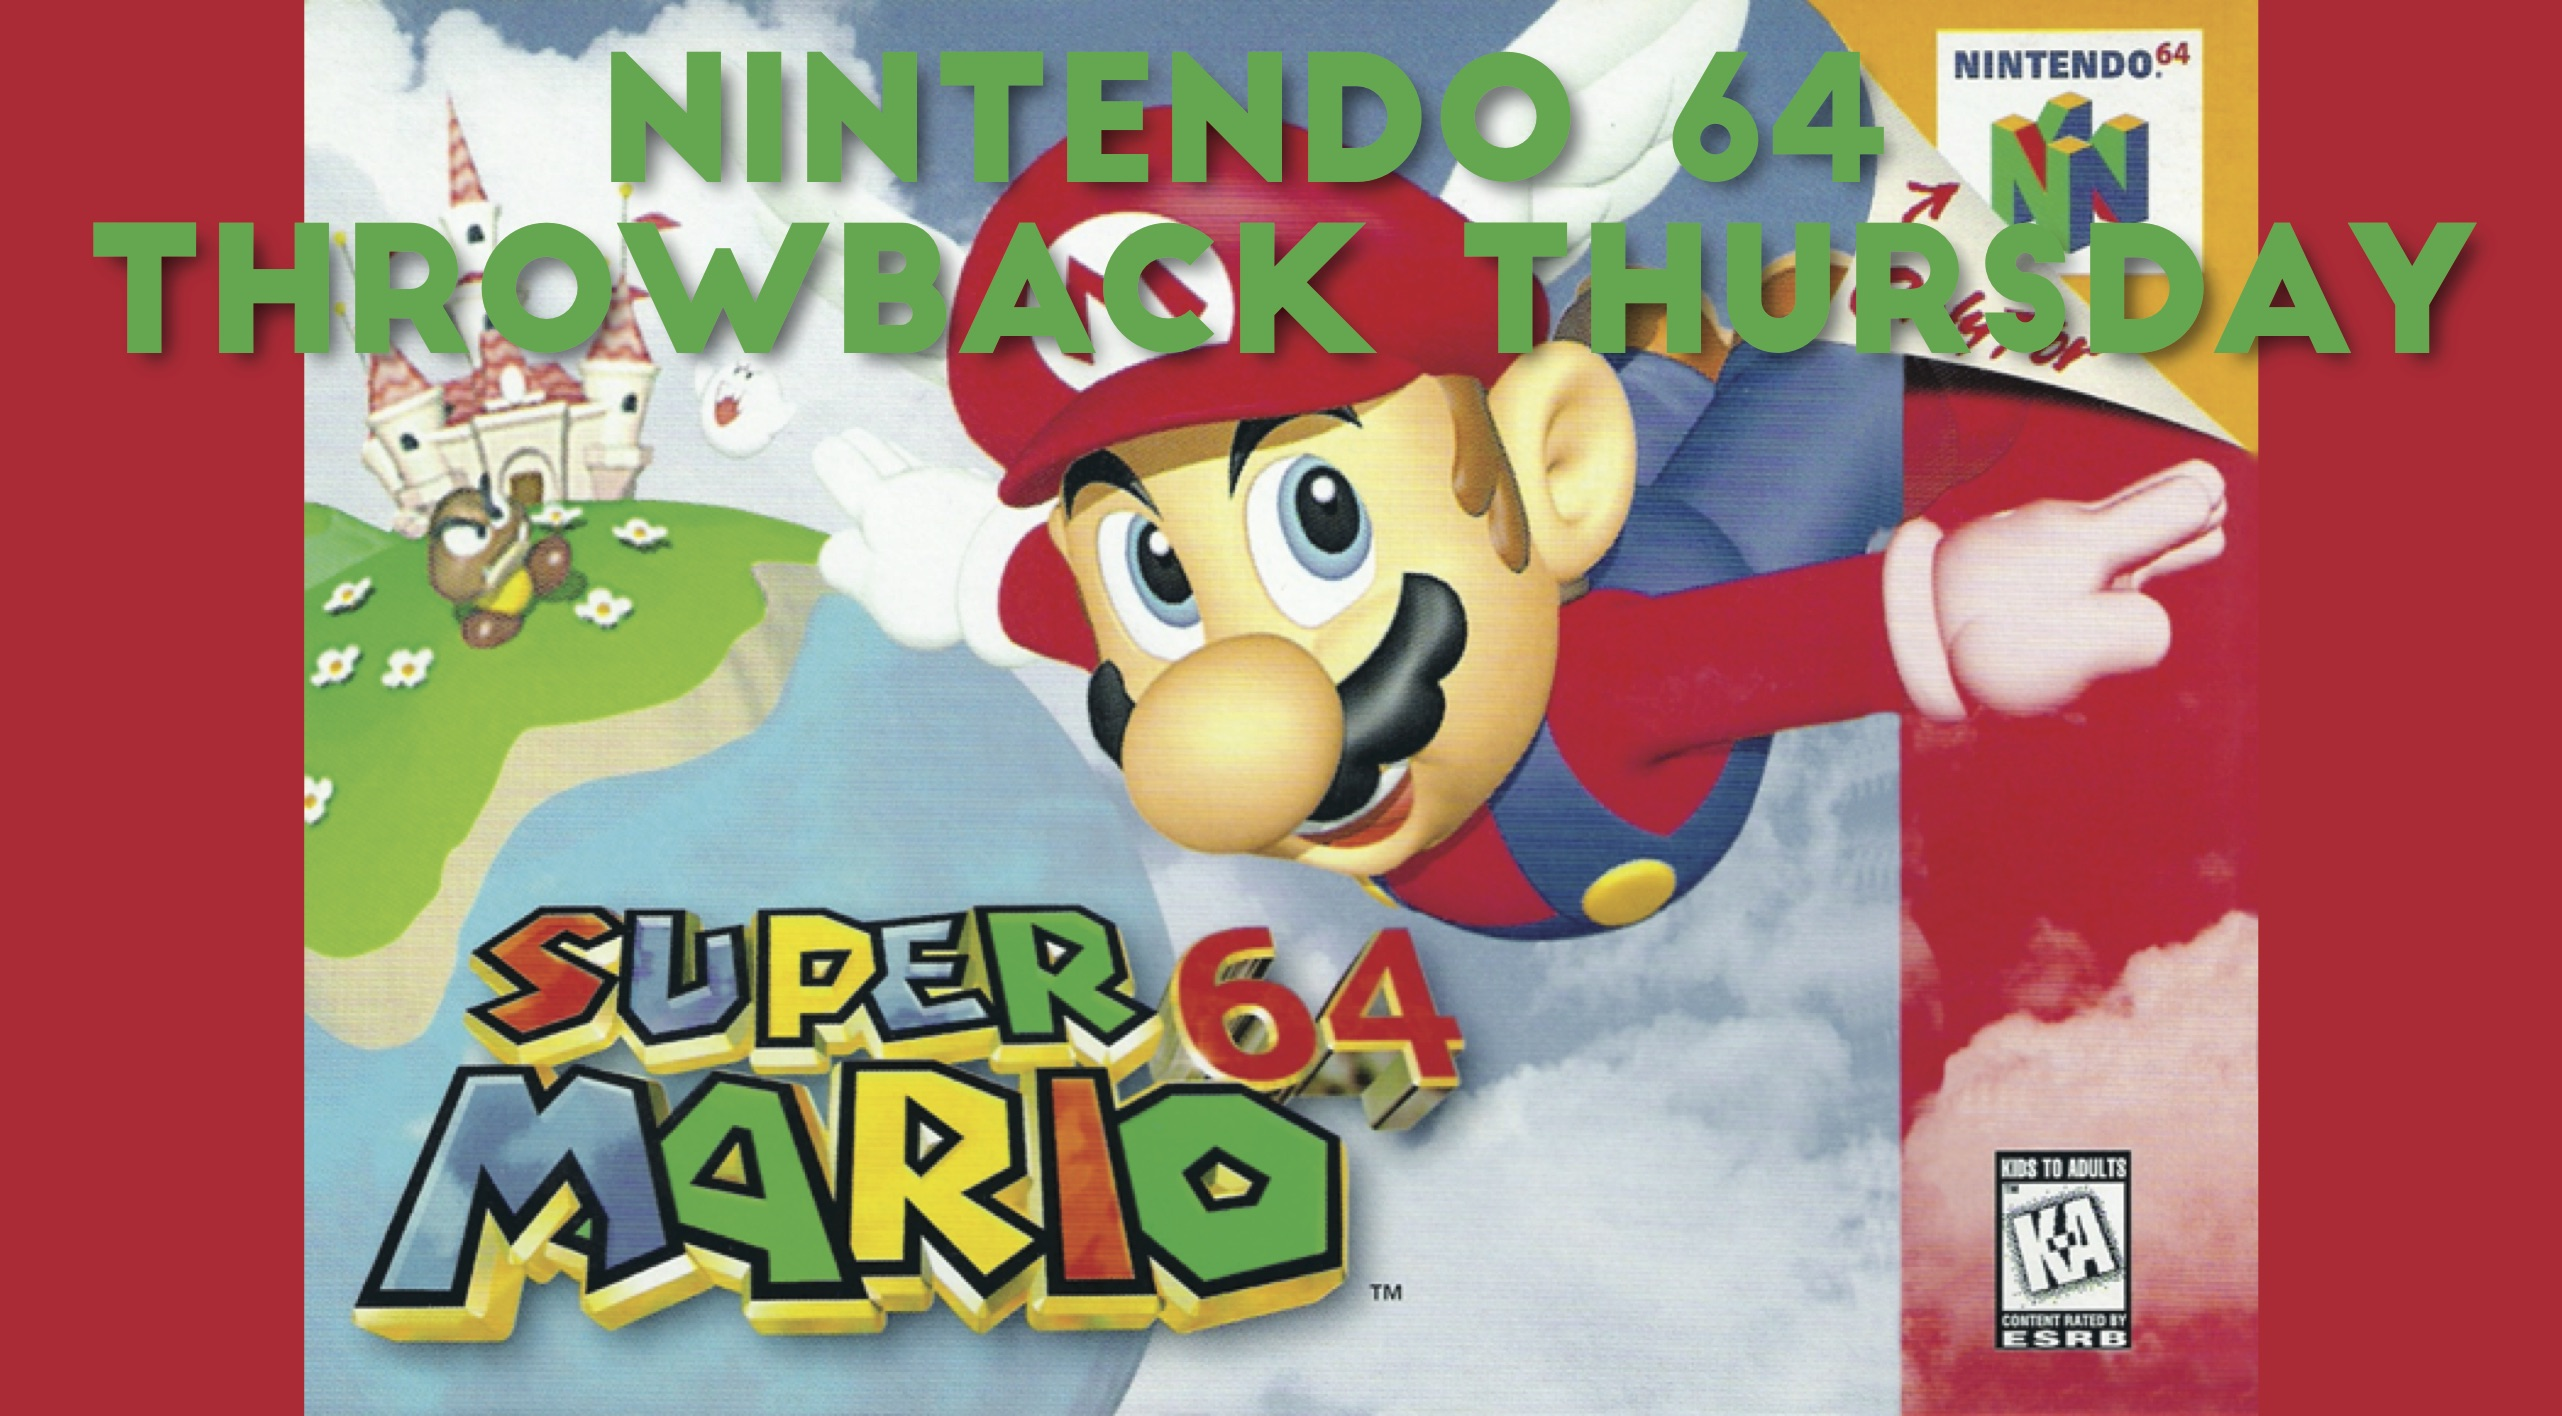 Nintendo 64 Throwback Thursday | Greenville University Papyrus